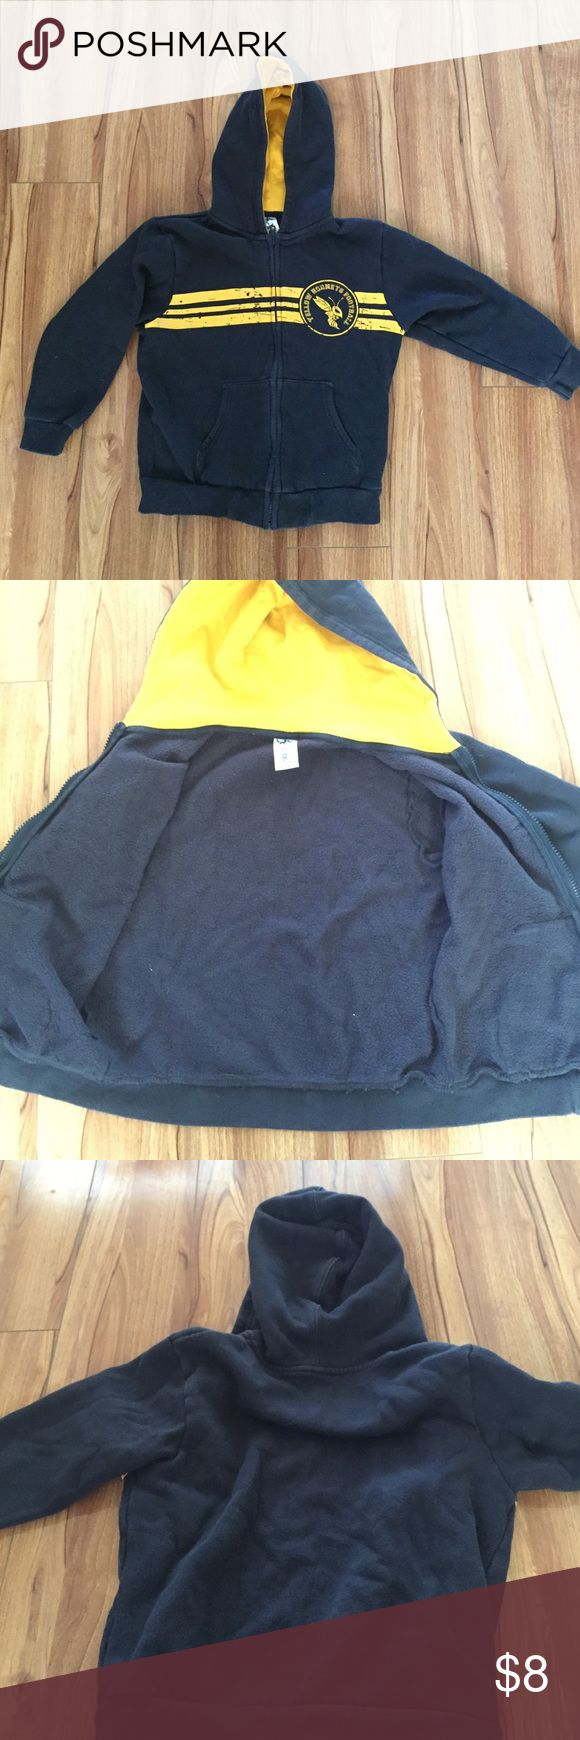 """Boys Gymboree Black and Yellow Zip up Jacket """"Yellow Hornets Football"""" zip up jacket with hoodie. 85% cotton, 15% polyester. Has pockets. Slightly stretchy. Slightly faded by the bottom of the jacket, but not very noticeable Gymboree Jackets & Coats"""